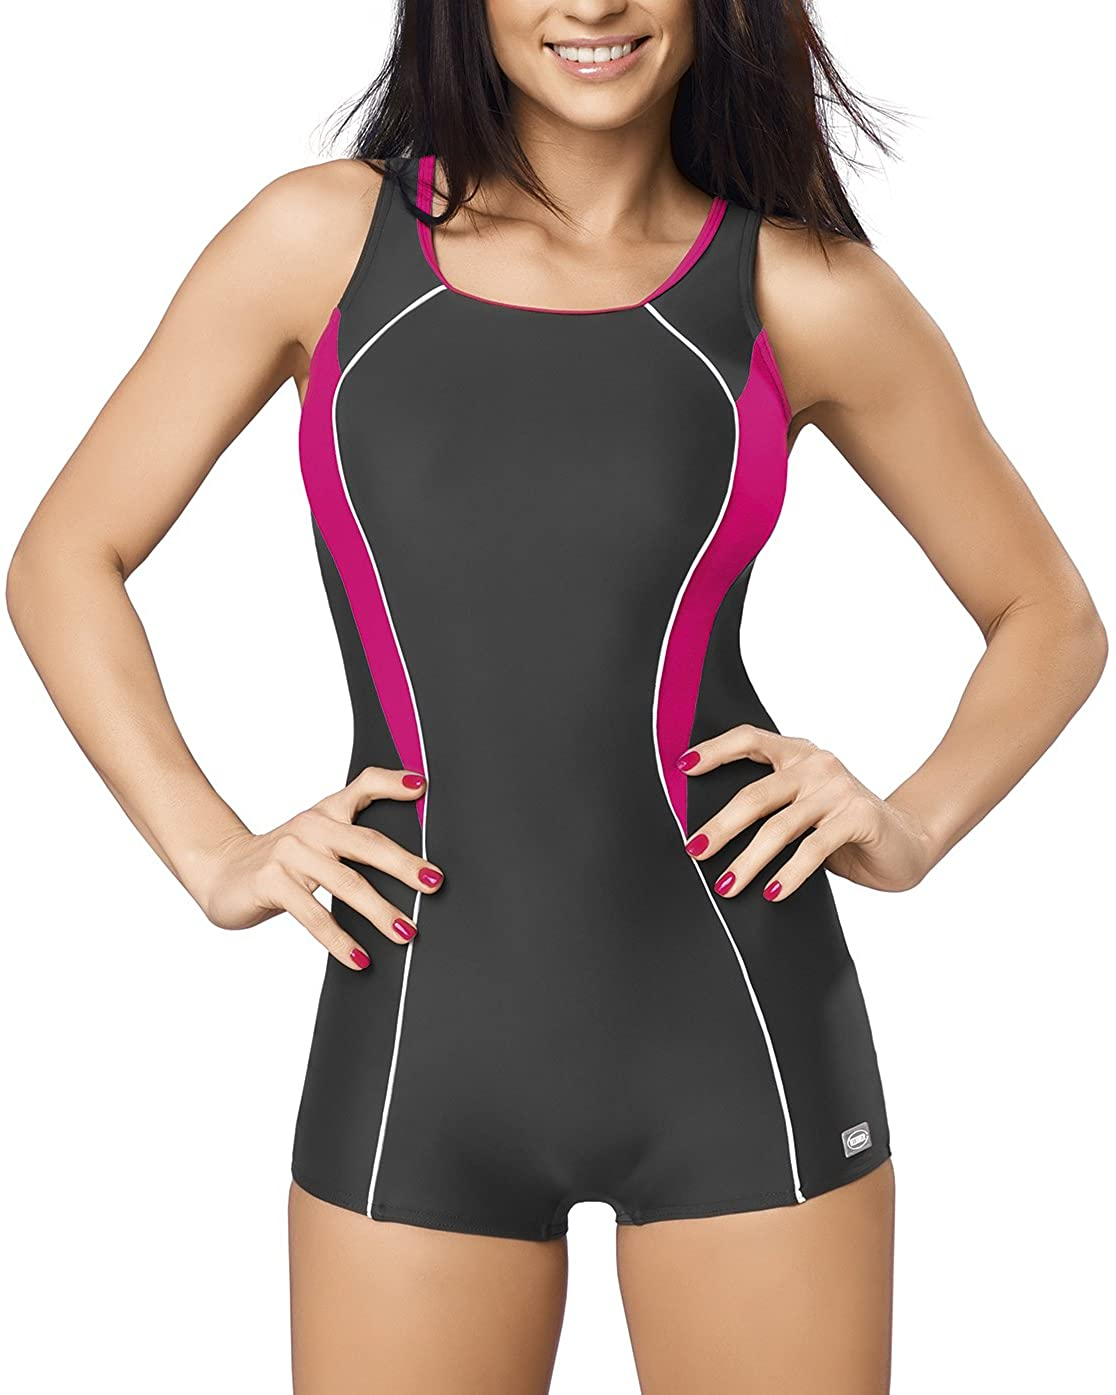 Gwinner Isabel II Women's one Piece Swimsuit Shorts Removable Pads Sports Style